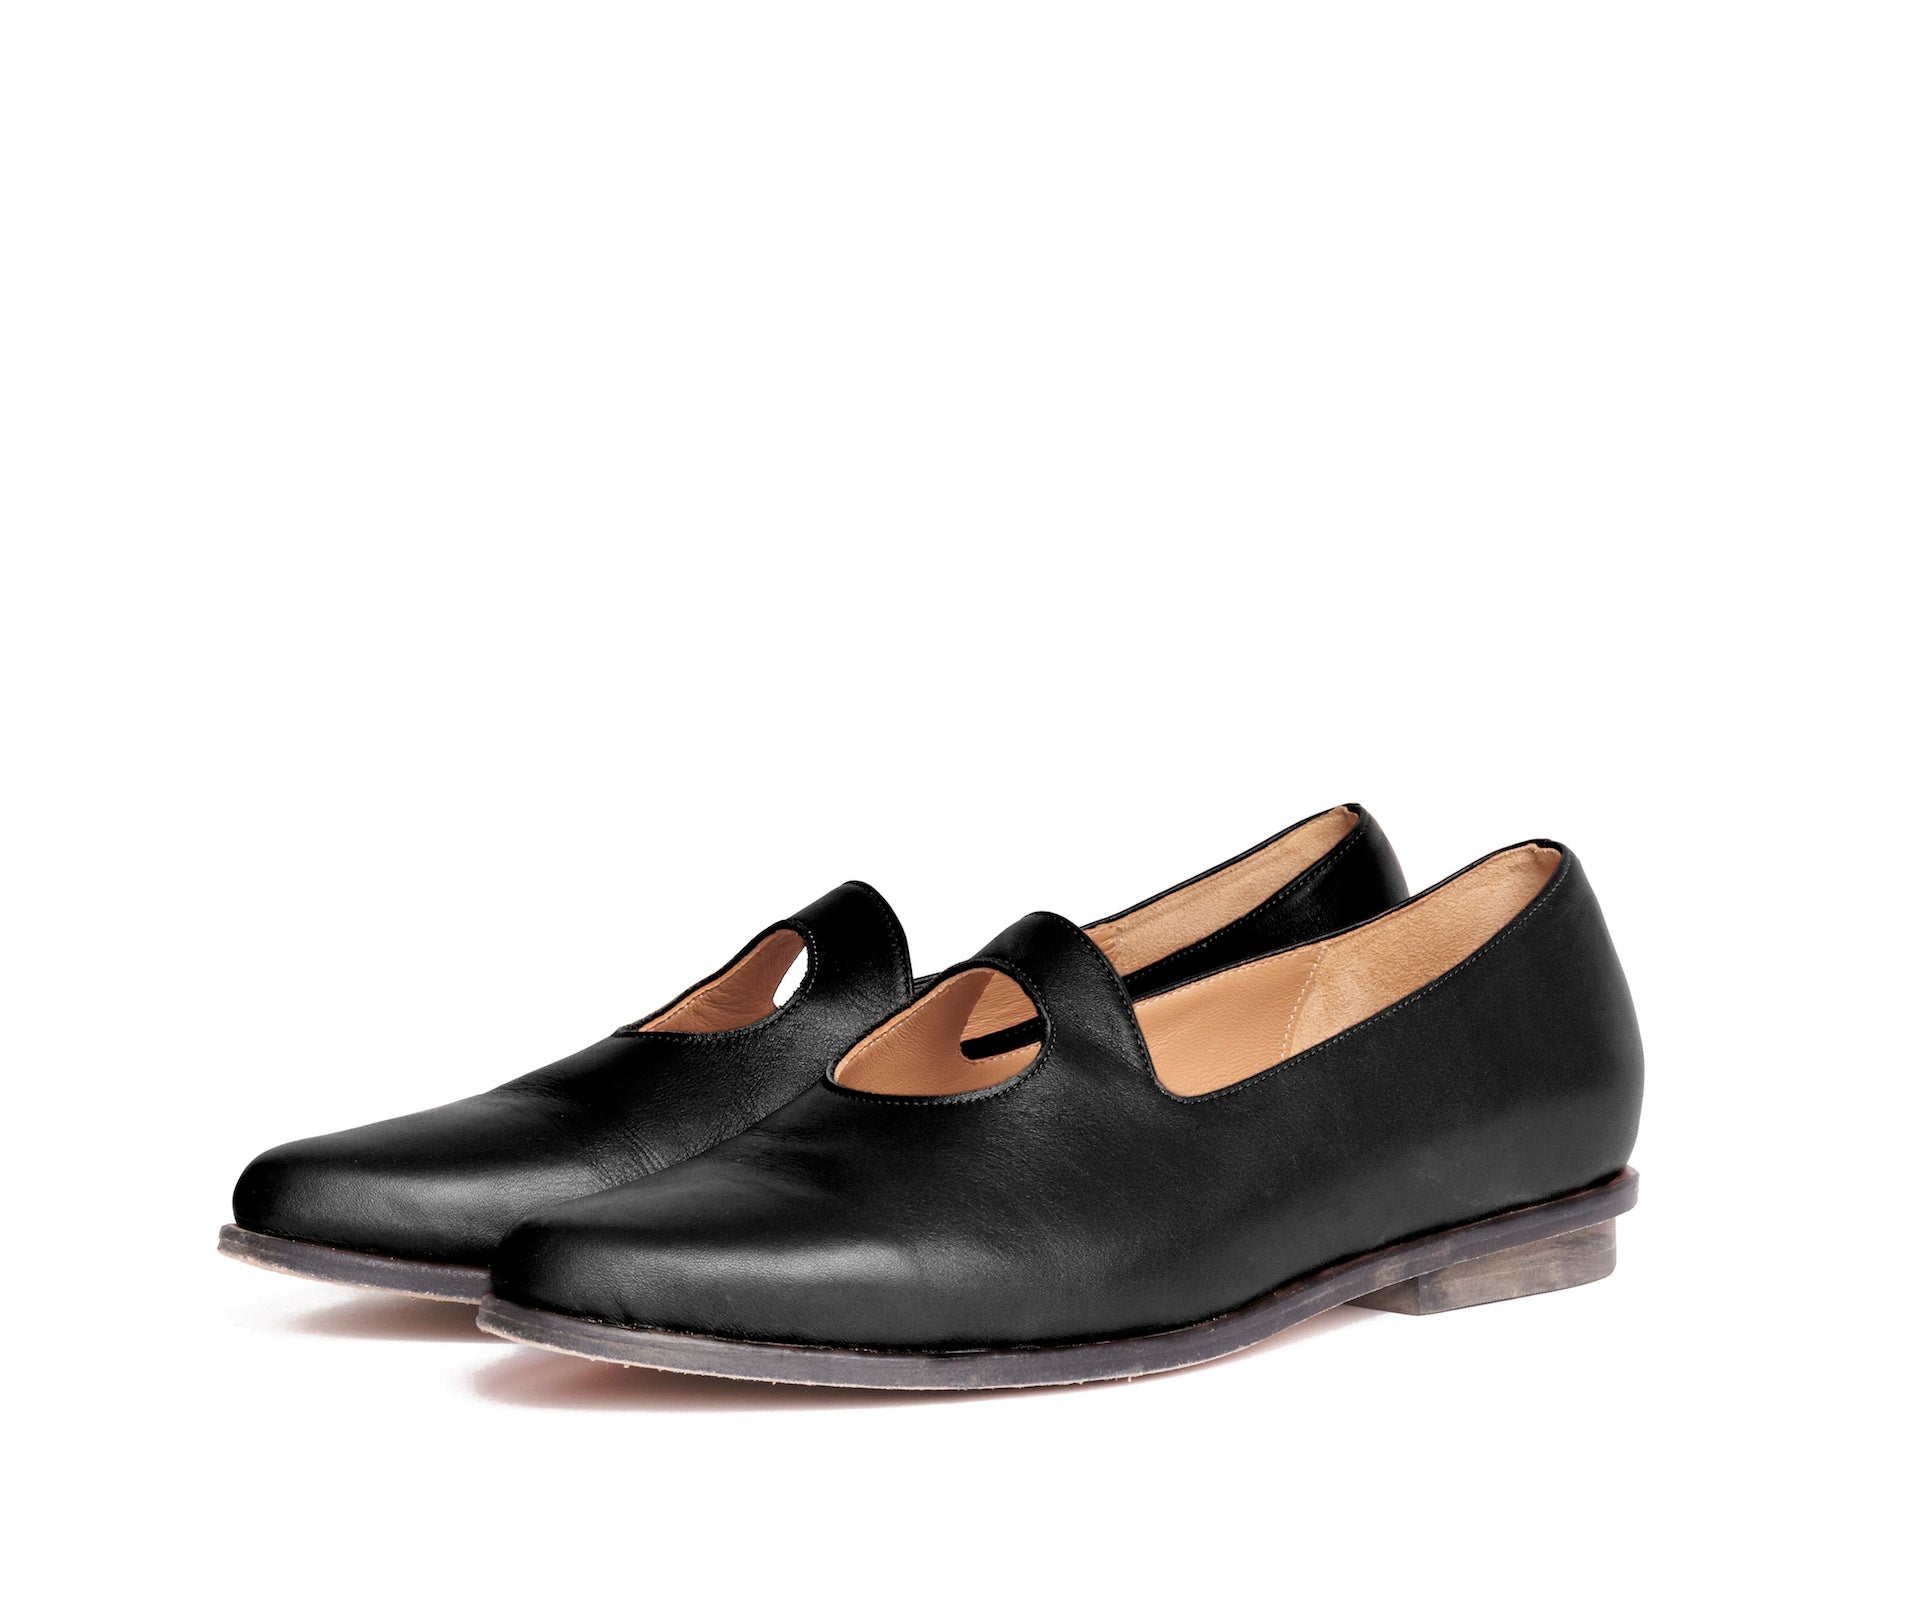 palla pointed toe, cut out loafer - black textured leather